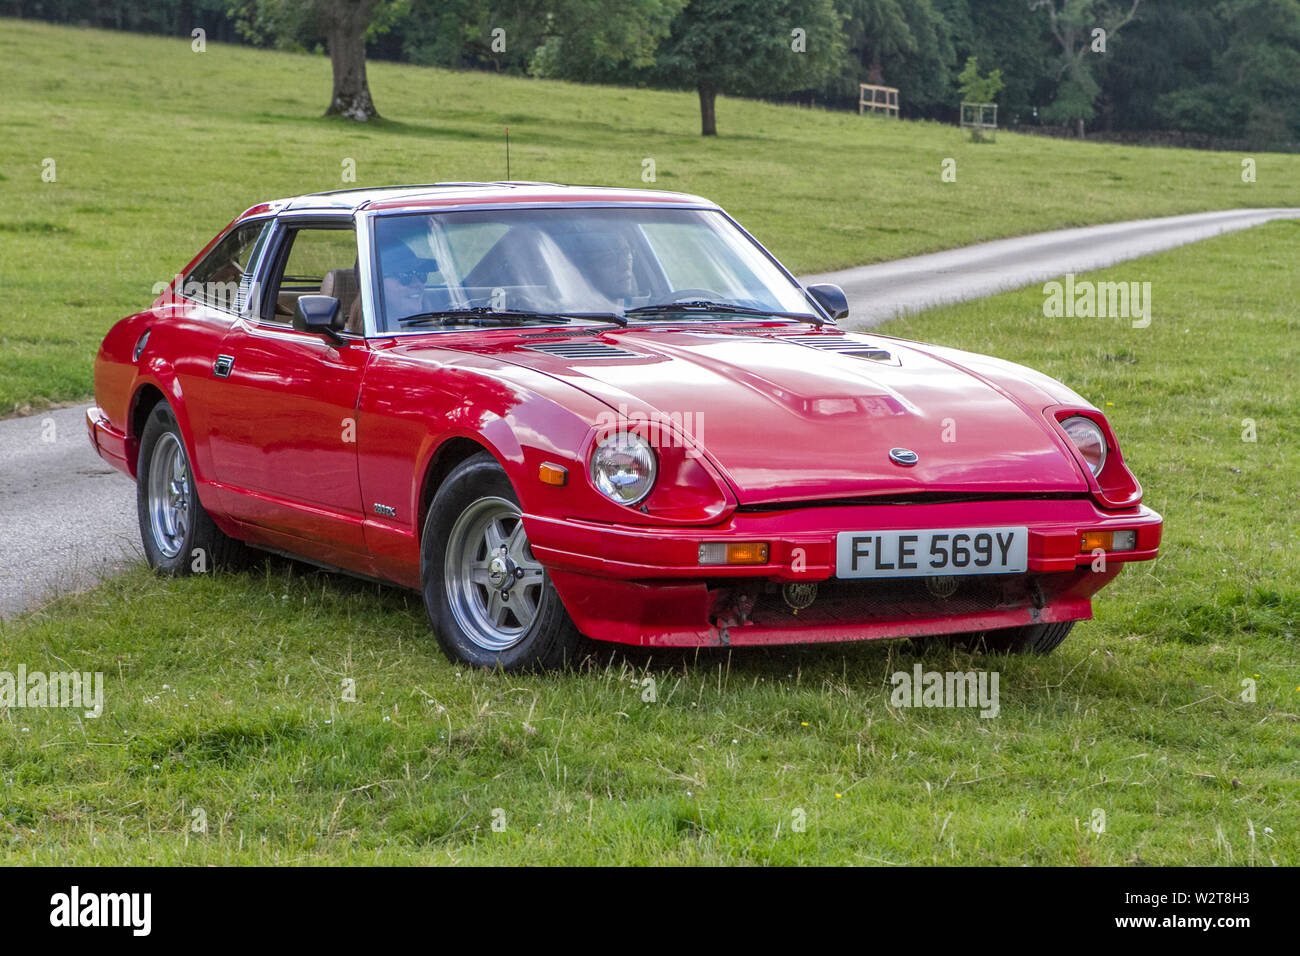 1983 Datsun 280 ZX; Vintage classic restored historic vehicles cars arriving at the Leighton Hall car show in Carnforth, Lancaster, UK Stock Photo